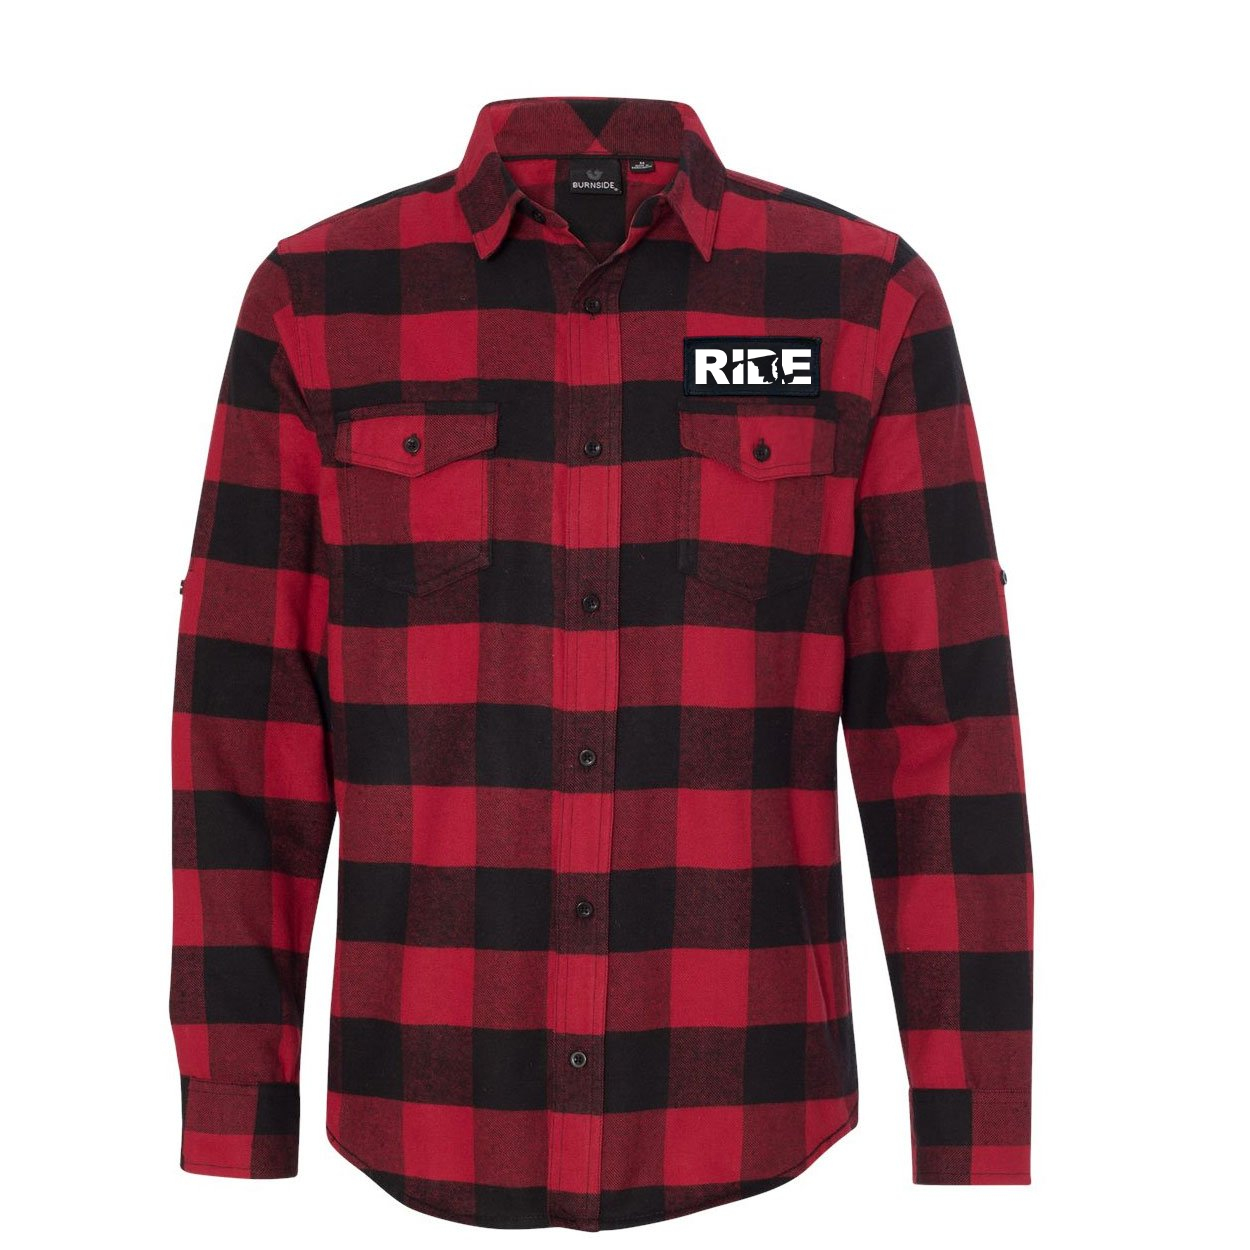 Ride Maryland Classic Unisex Long Sleeve Woven Patch Flannel Shirt Red/Black Buffalo (White Logo)